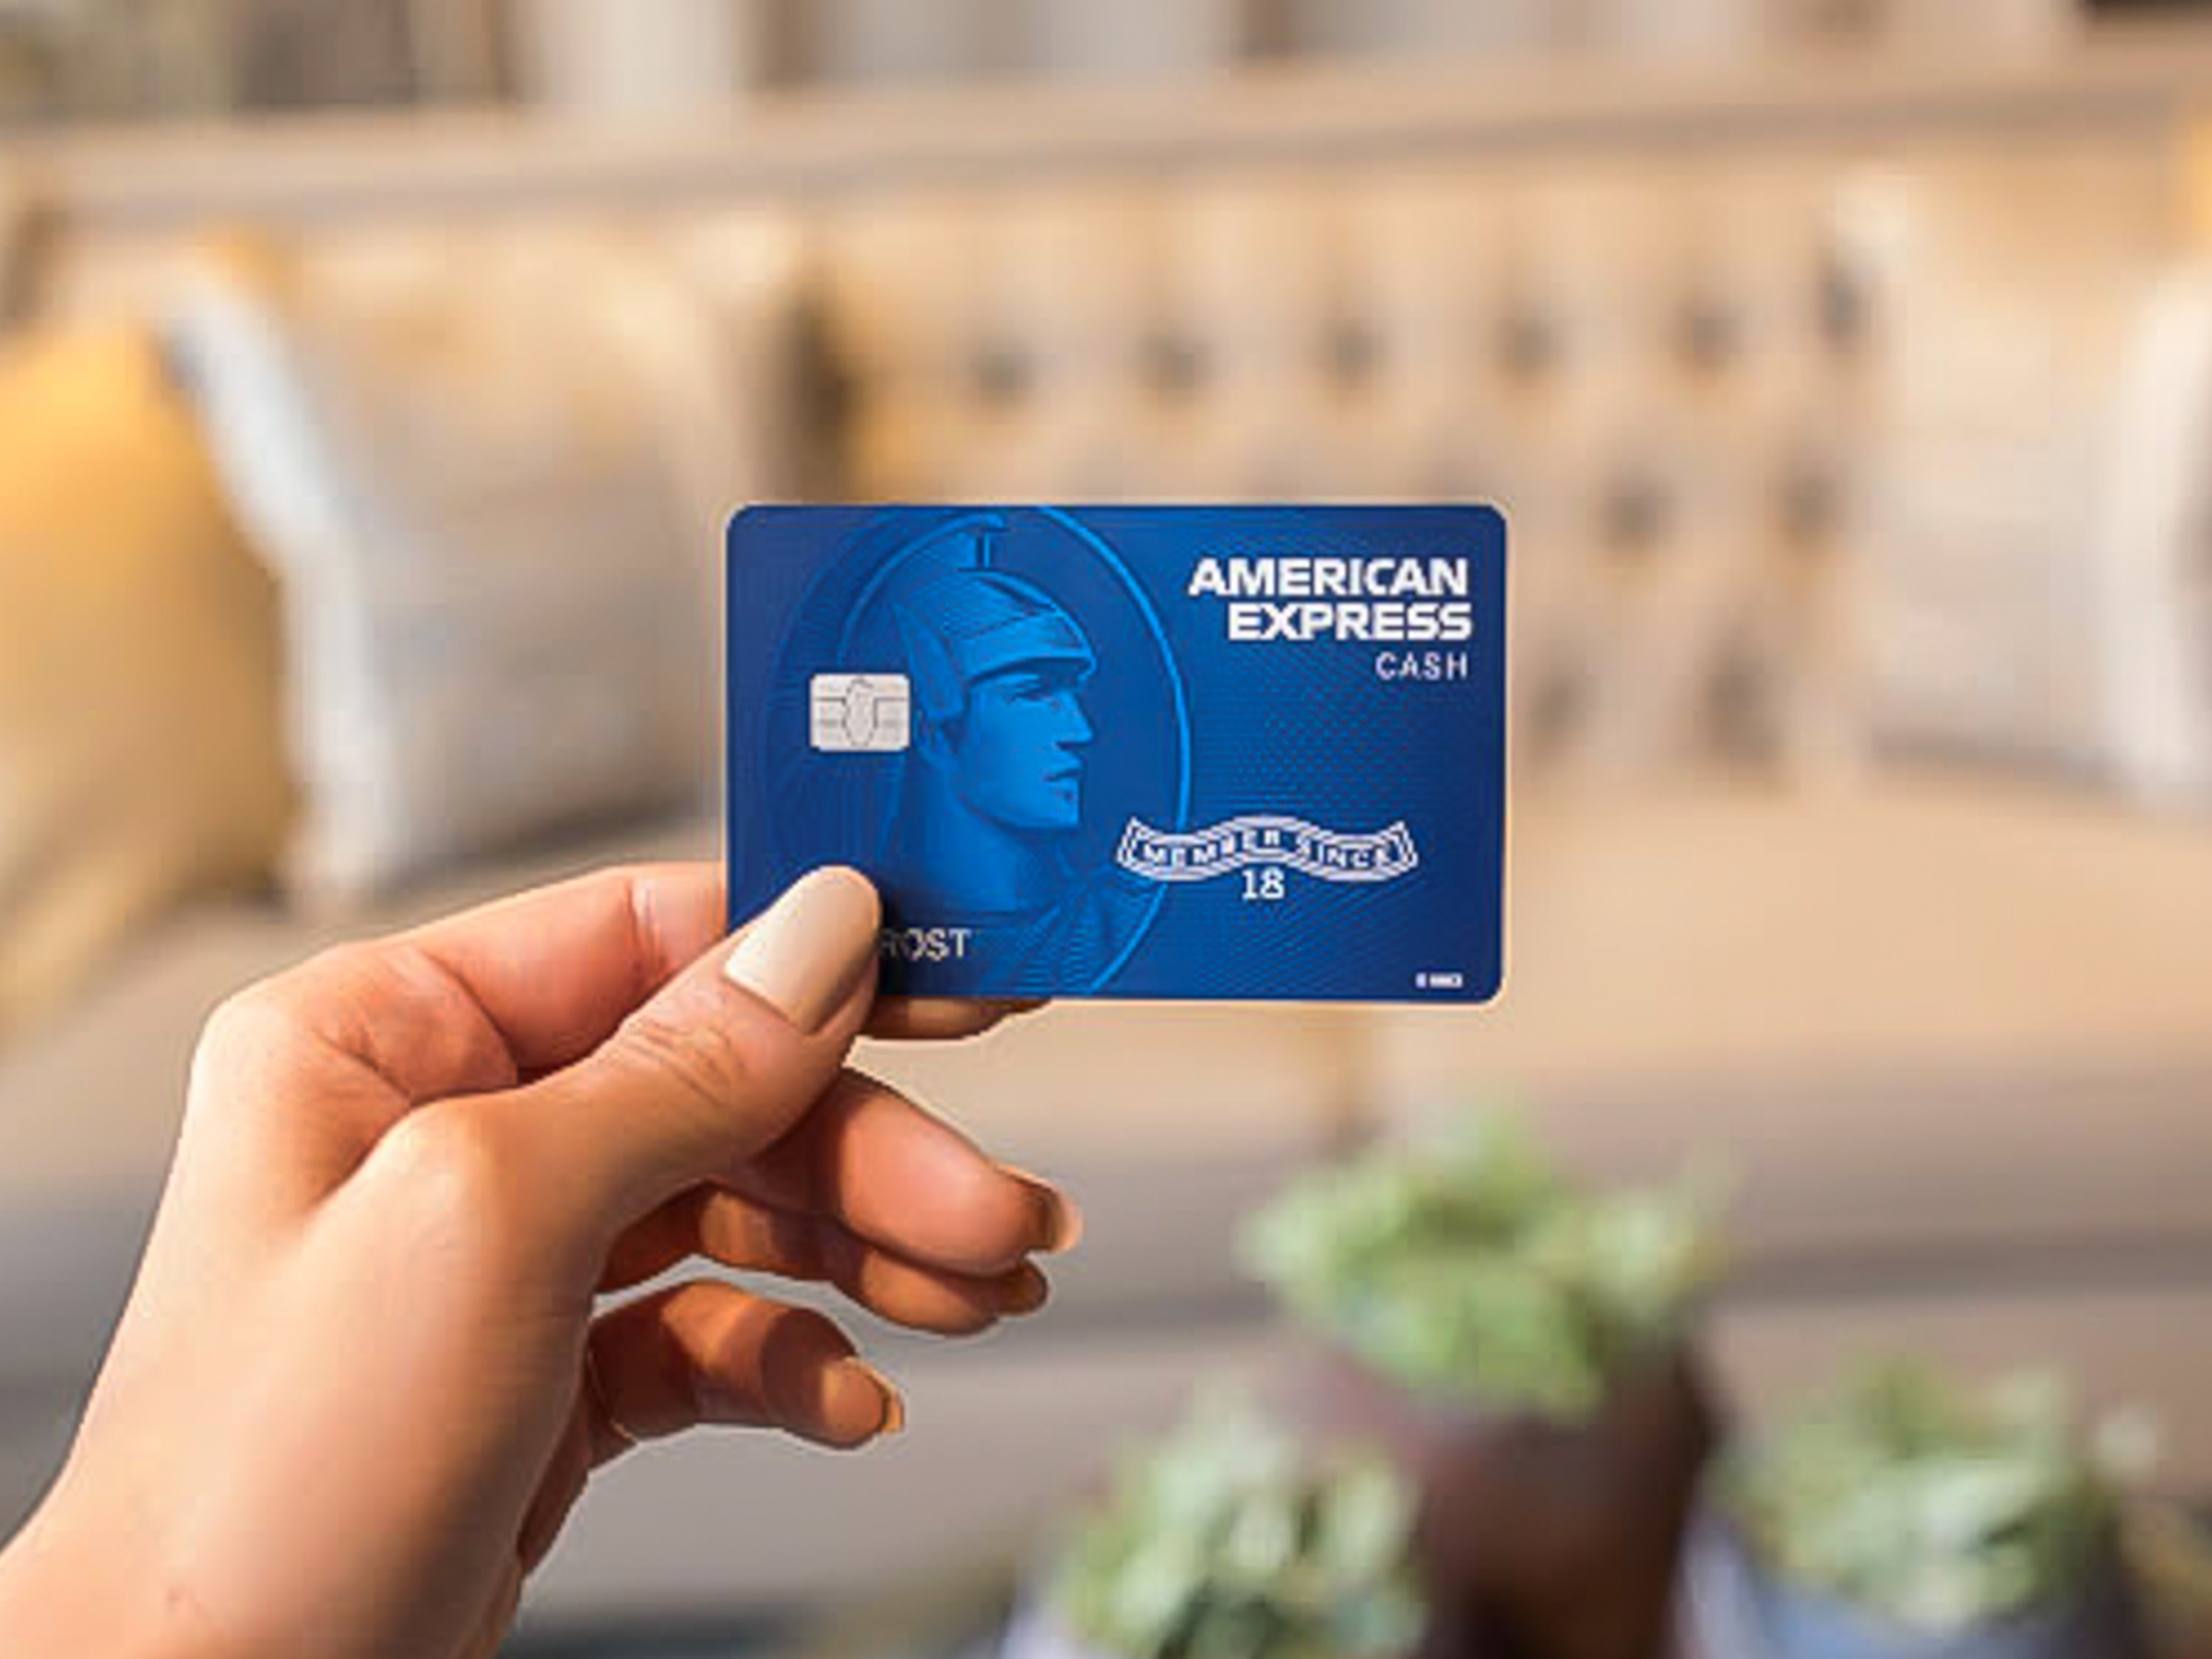 American Express is launching a new card, called Cash Magnet, to give users cash-back flexibility, as well as flexibility in how they choose to pay.